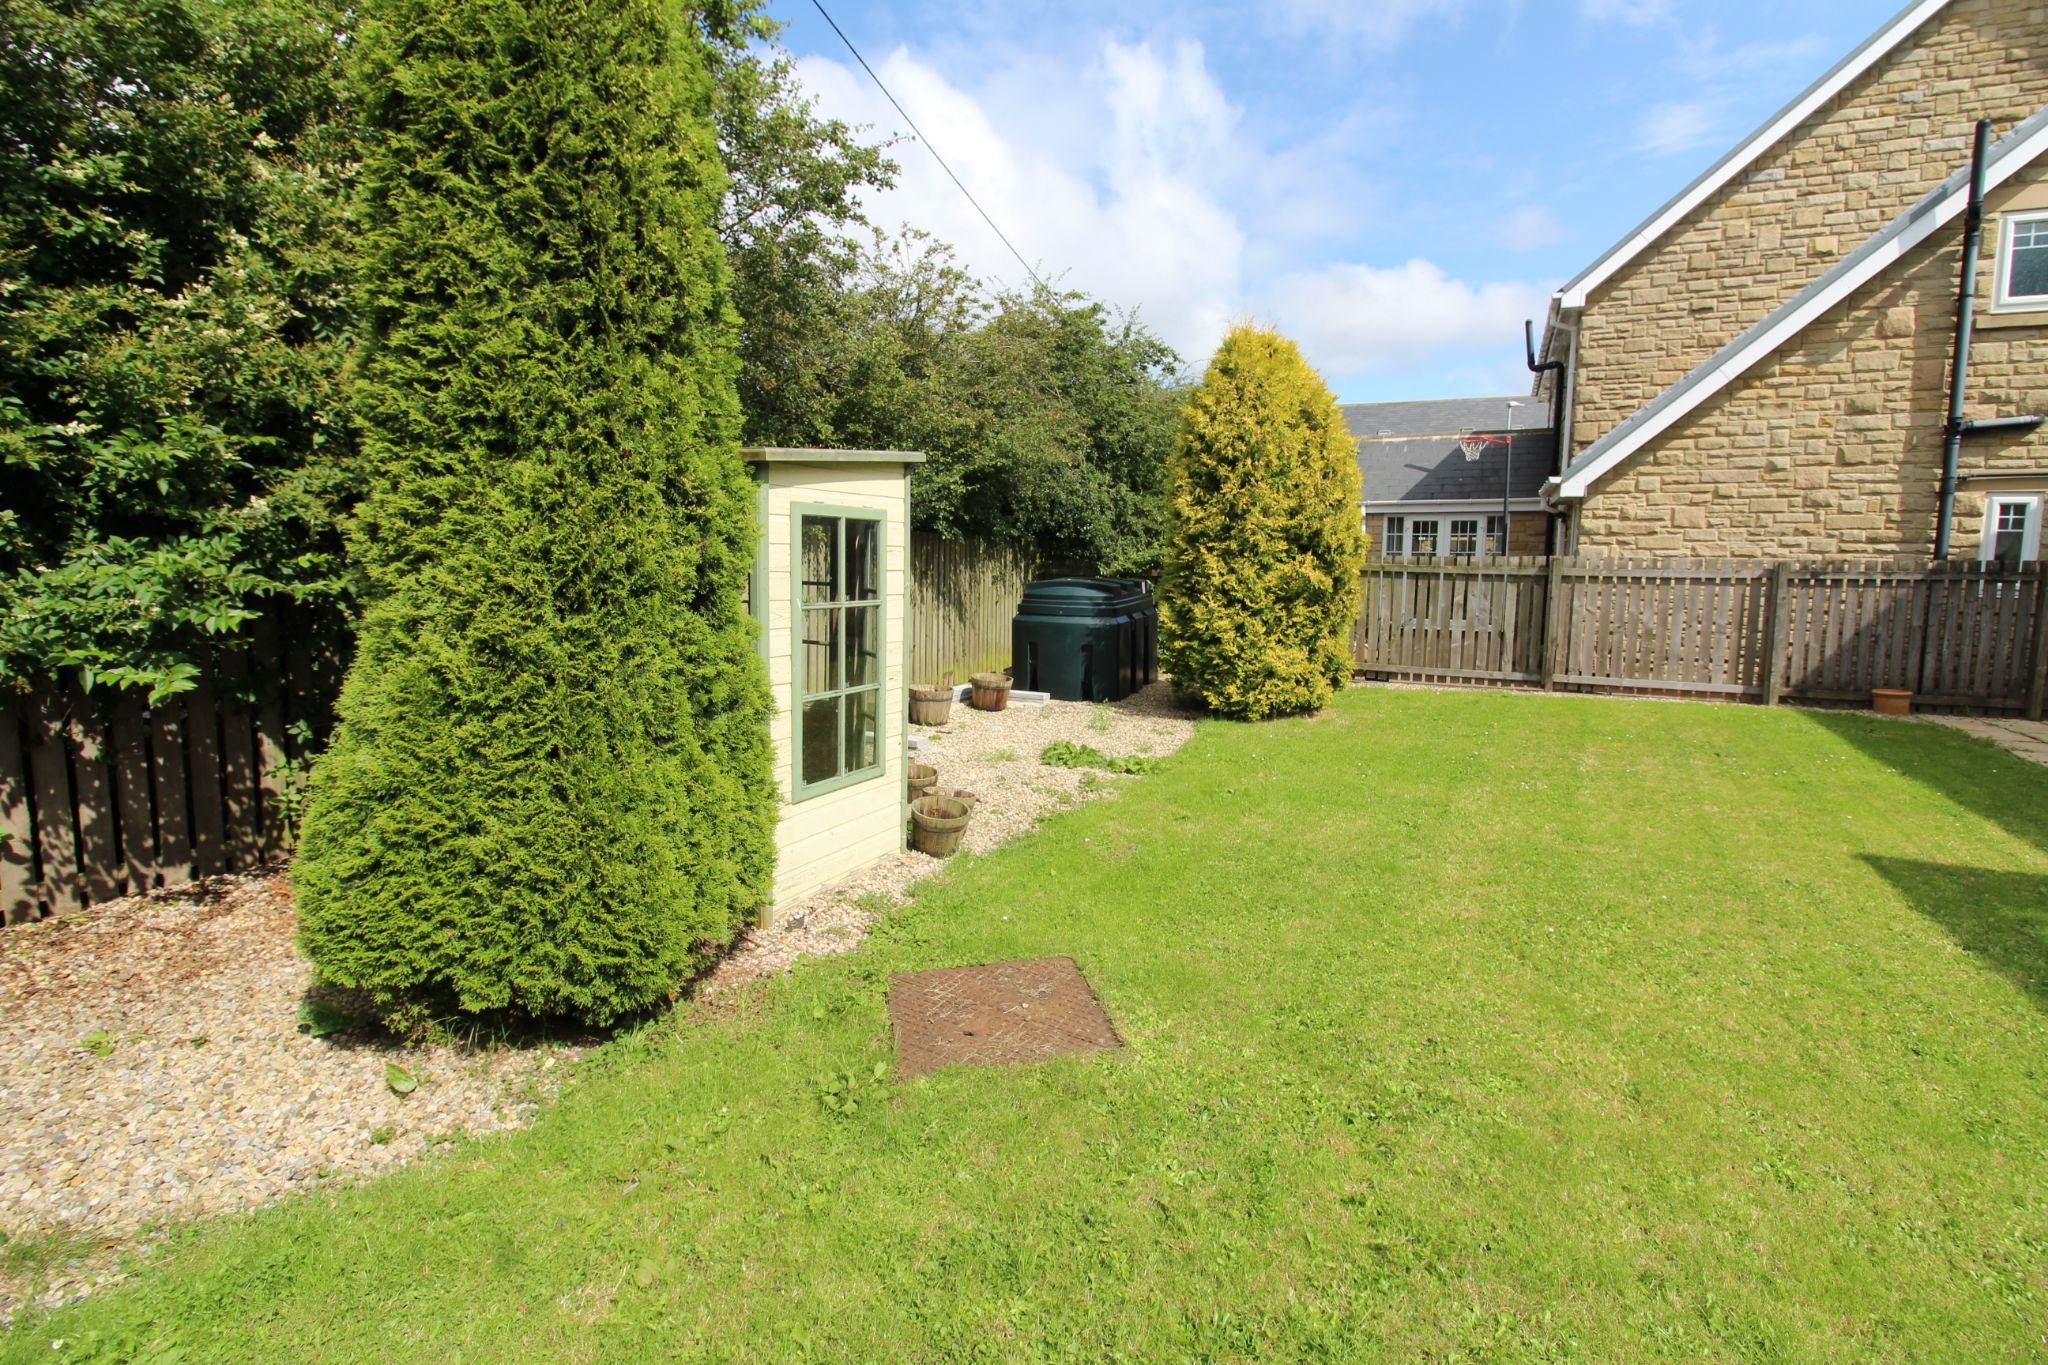 7 bedroom detached house Sale Agreed in Sunniside - Photograph 4.